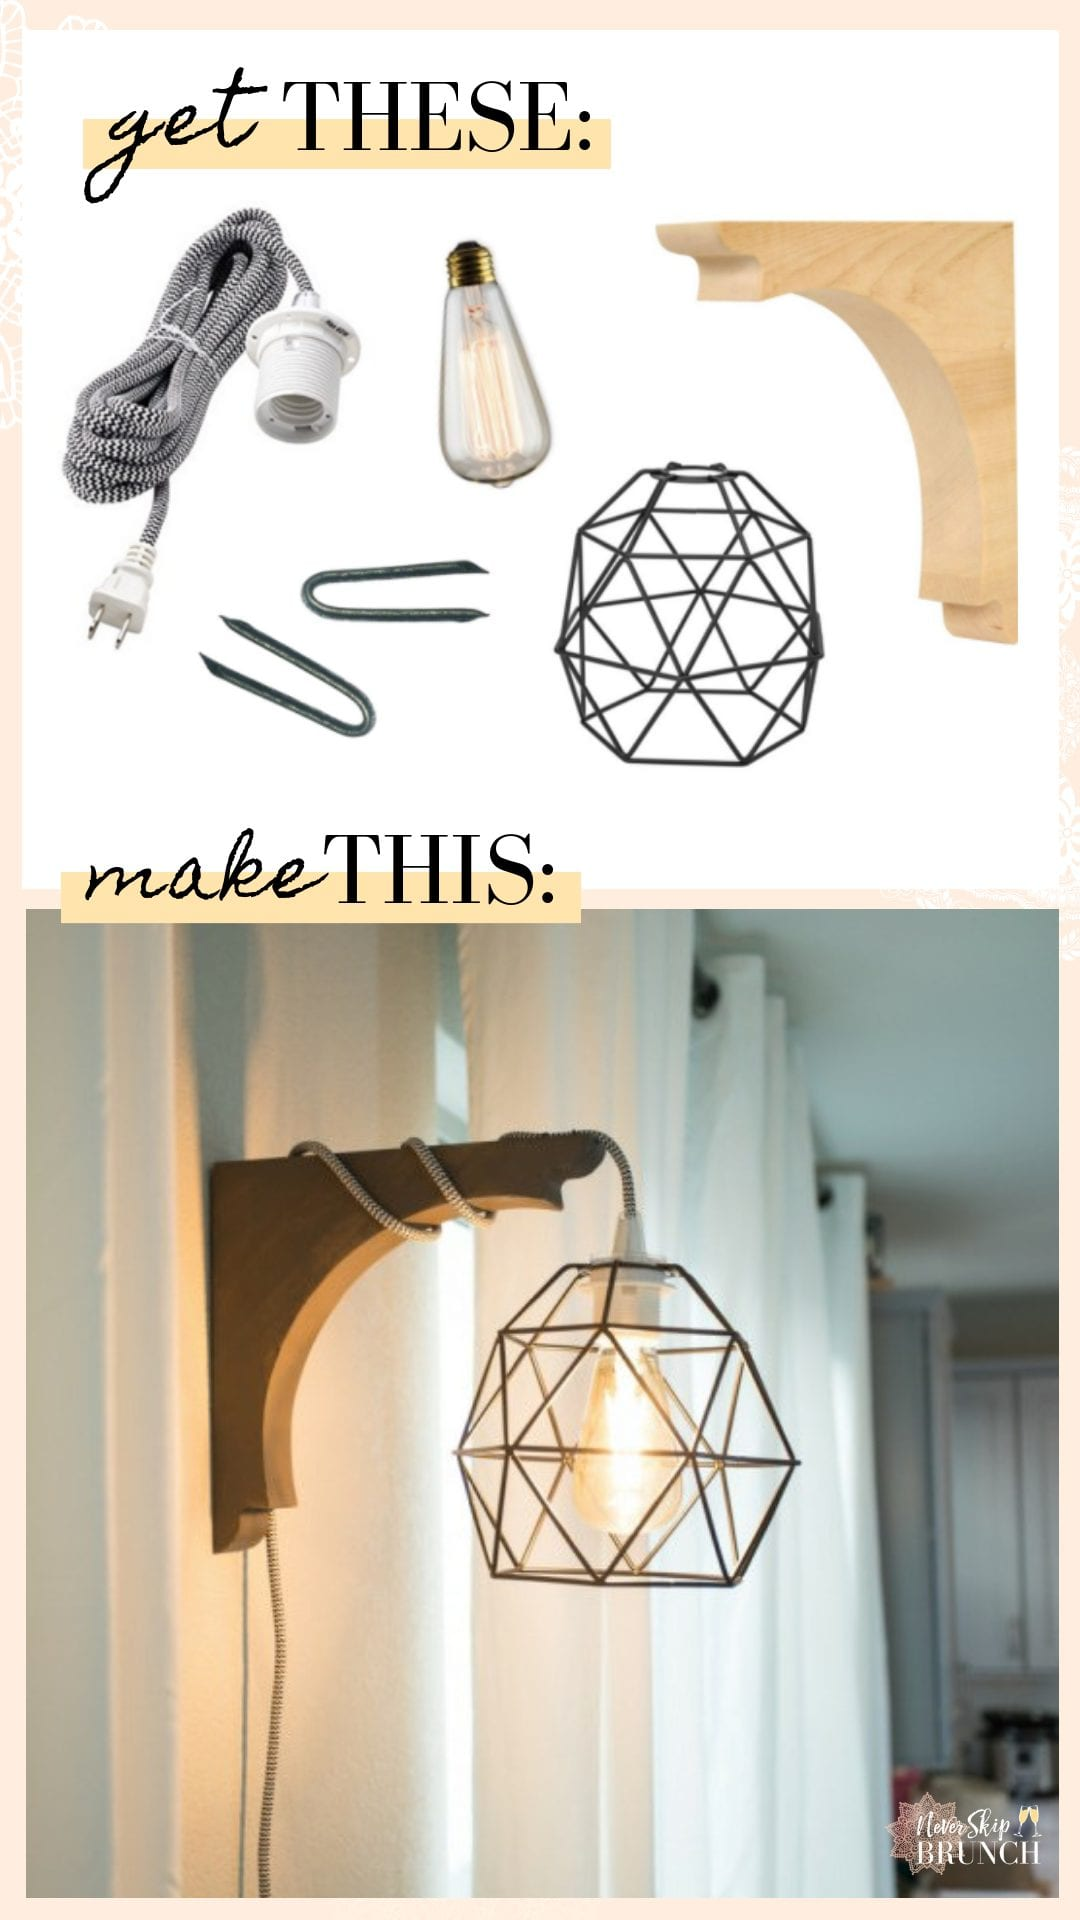 super easy corbel sconce light DIY | This diy corbel light does not require a drill. You can build this industrial diy corbel light sconce in under 30 minutes. | never skip brunch by cara newhart #decor #home #DIY